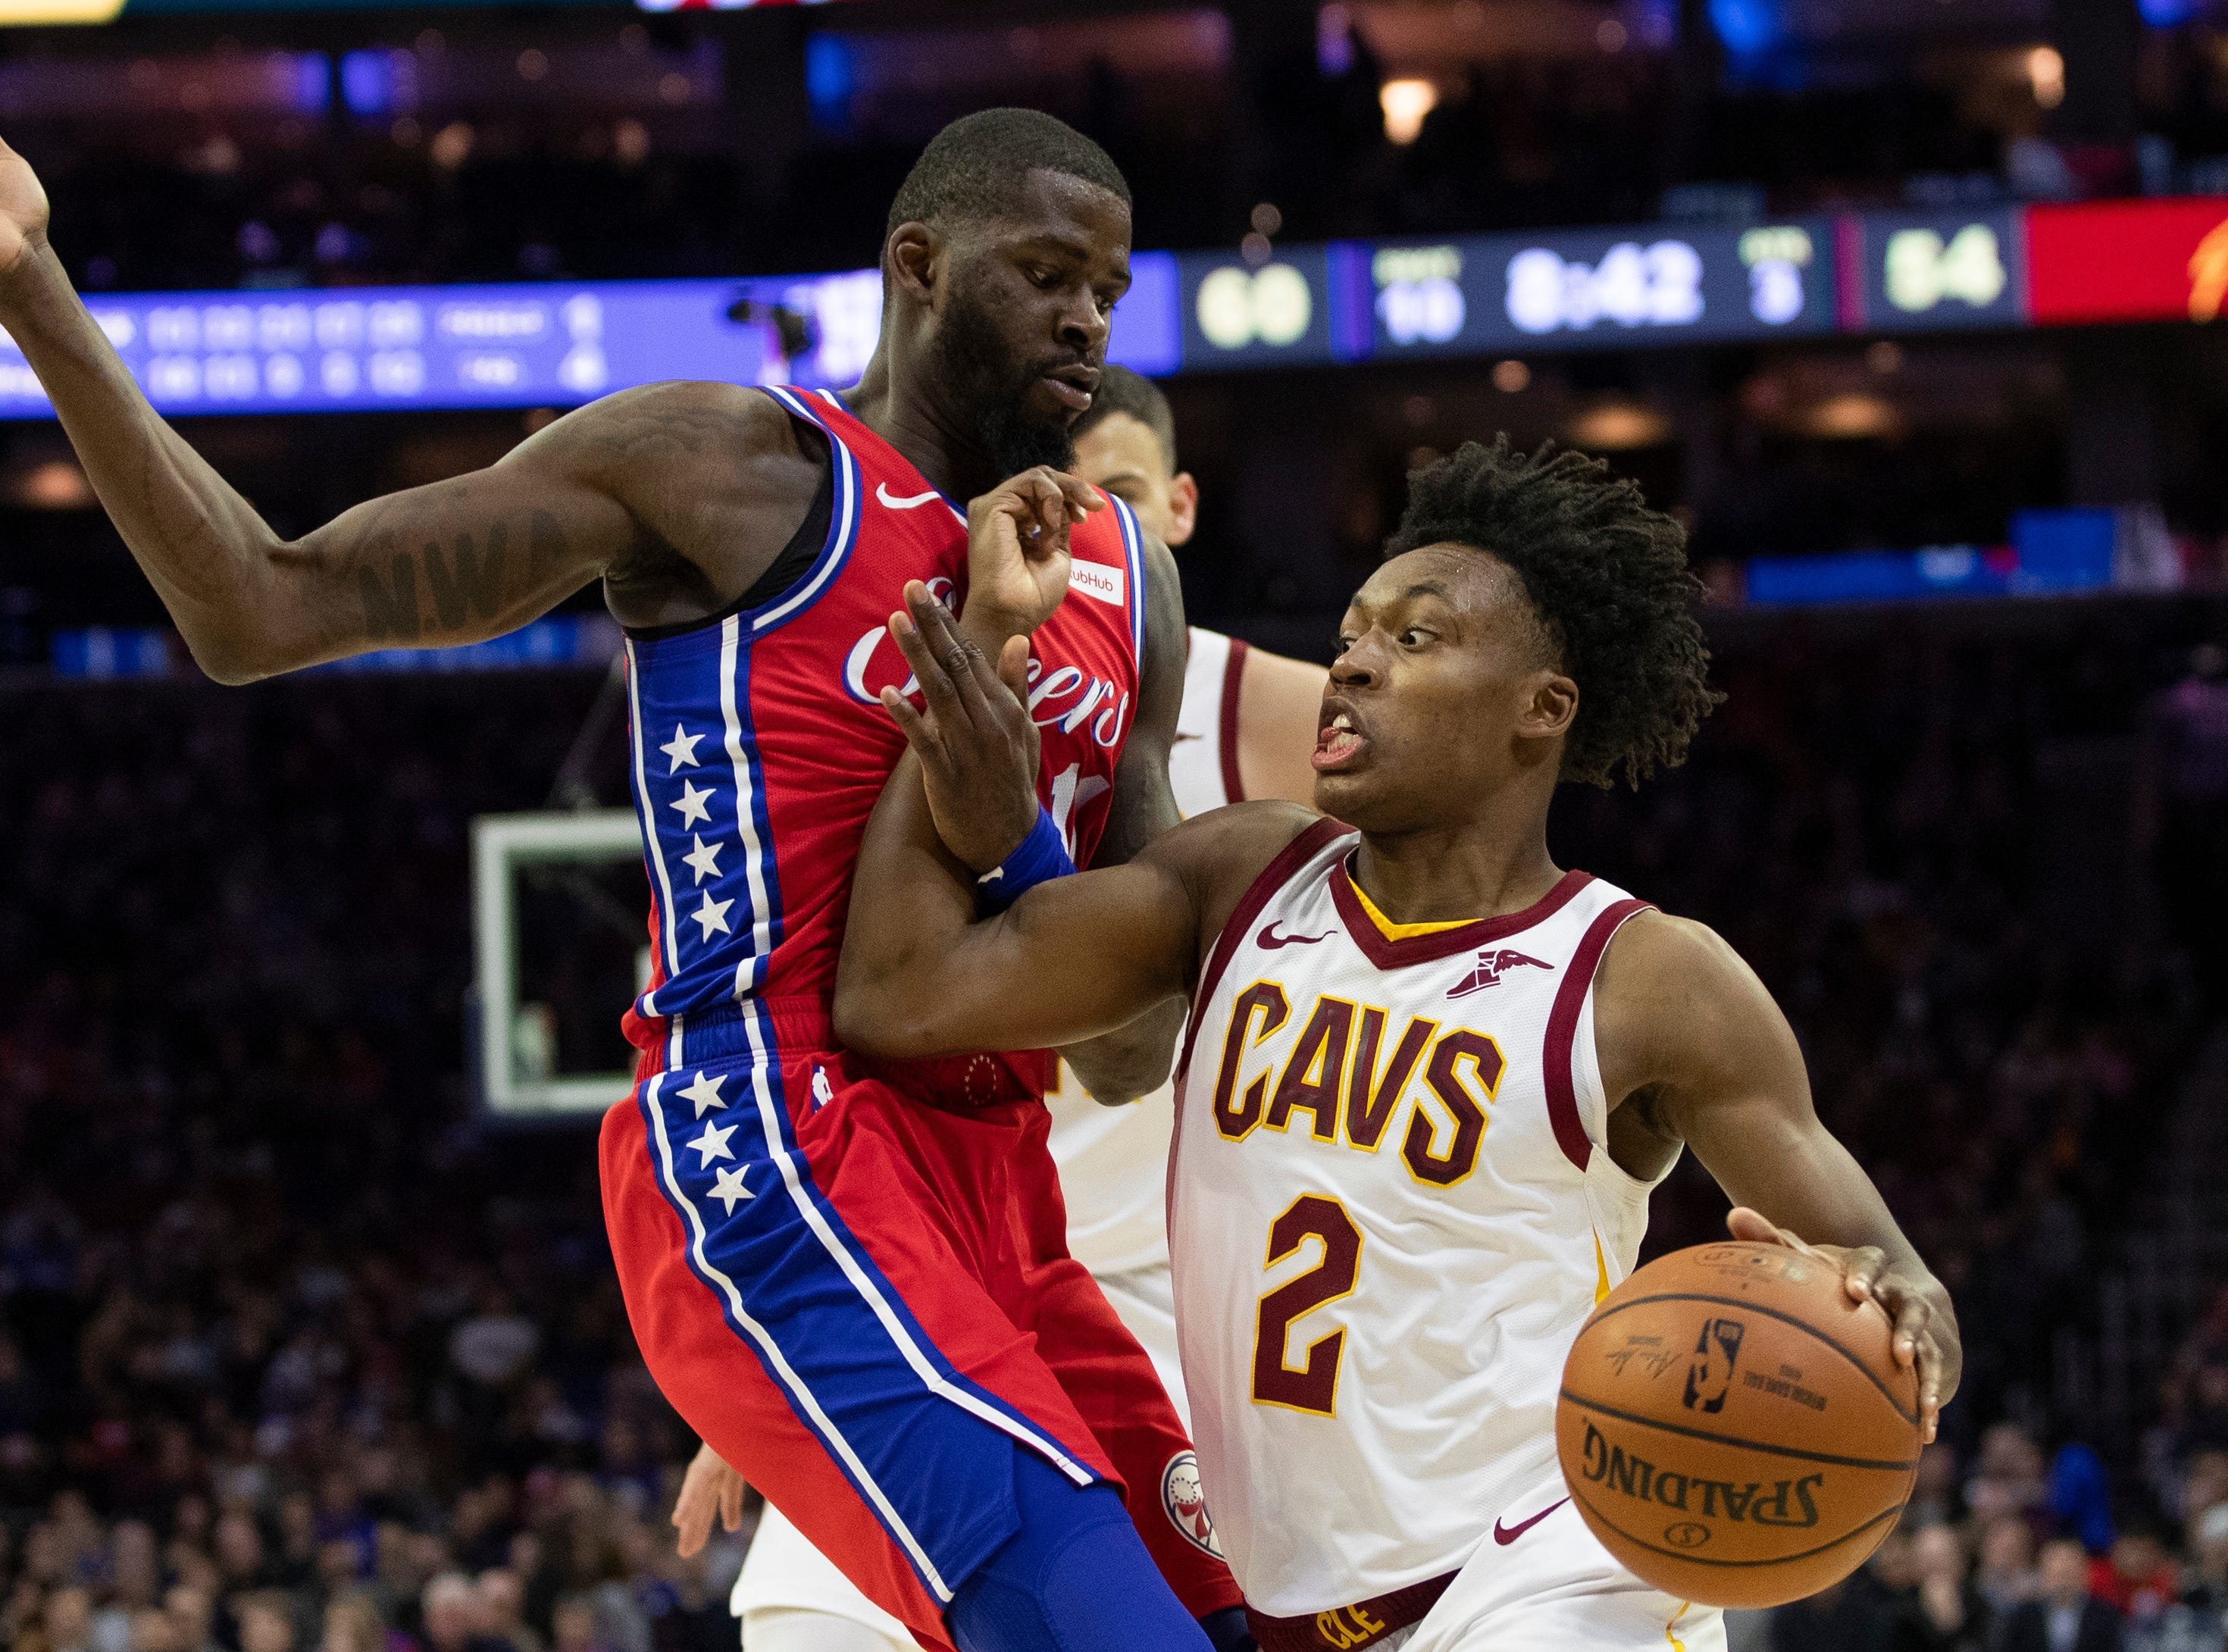 Cleveland Cavaliers' Collin Sexton, right, drives to the basket against Philadelphia 76ers' James Ennis III, left, during the second half of an NBA basketball game, Tuesday, March 12, 2019, in Philadelphia. The 76ers won 106-99. (AP Photo/Chris Szagola)